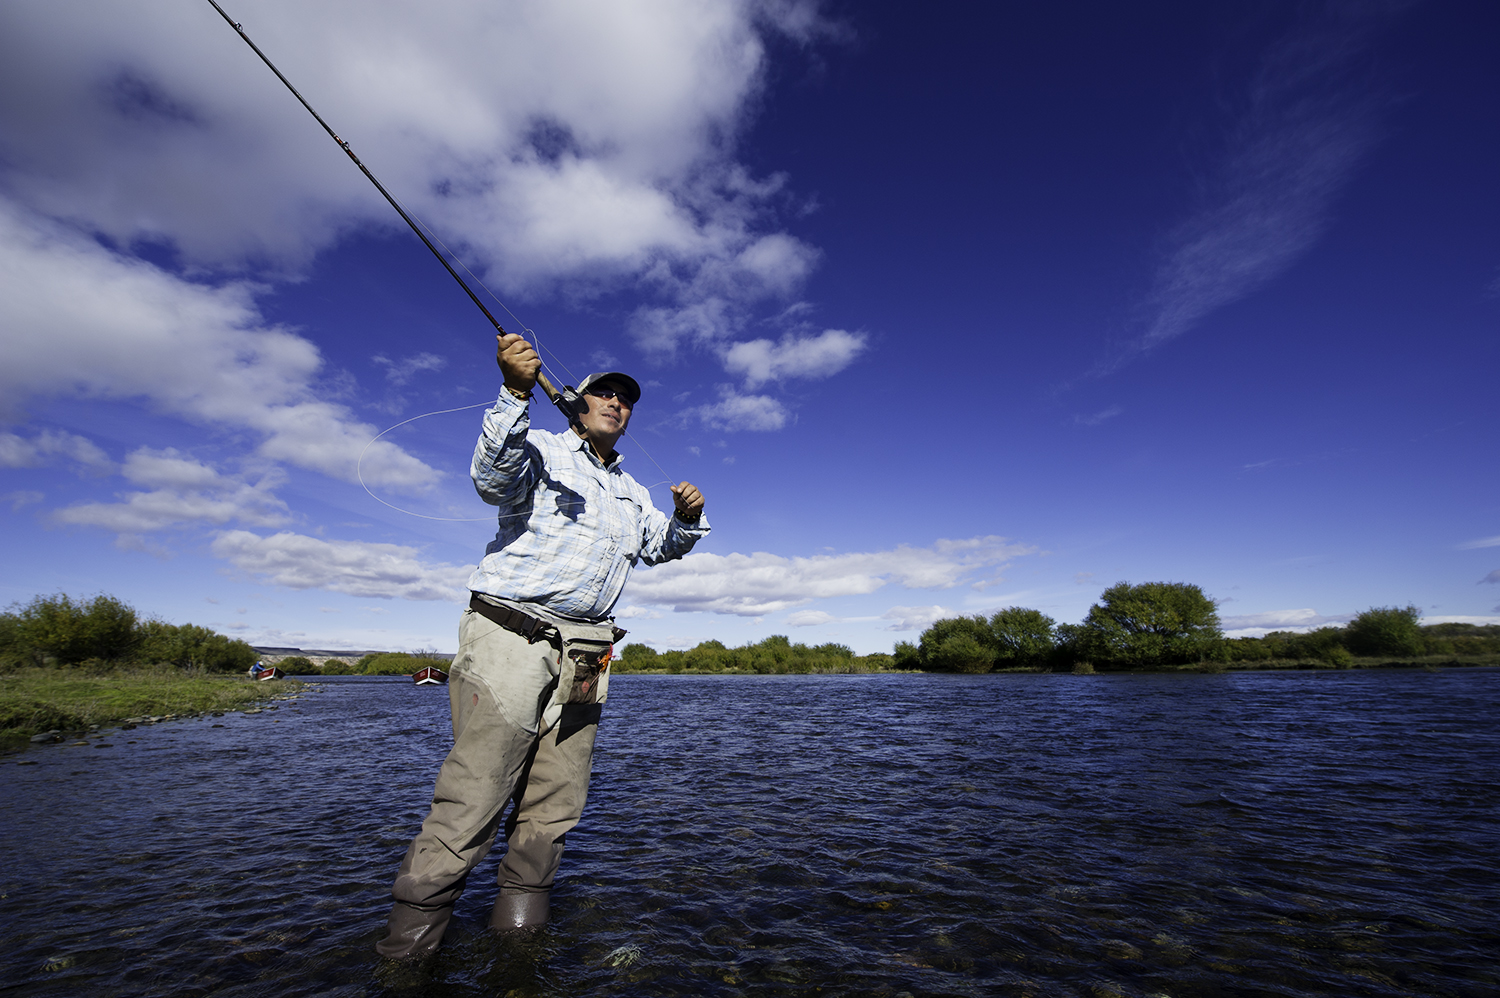 On a Limay side channel...